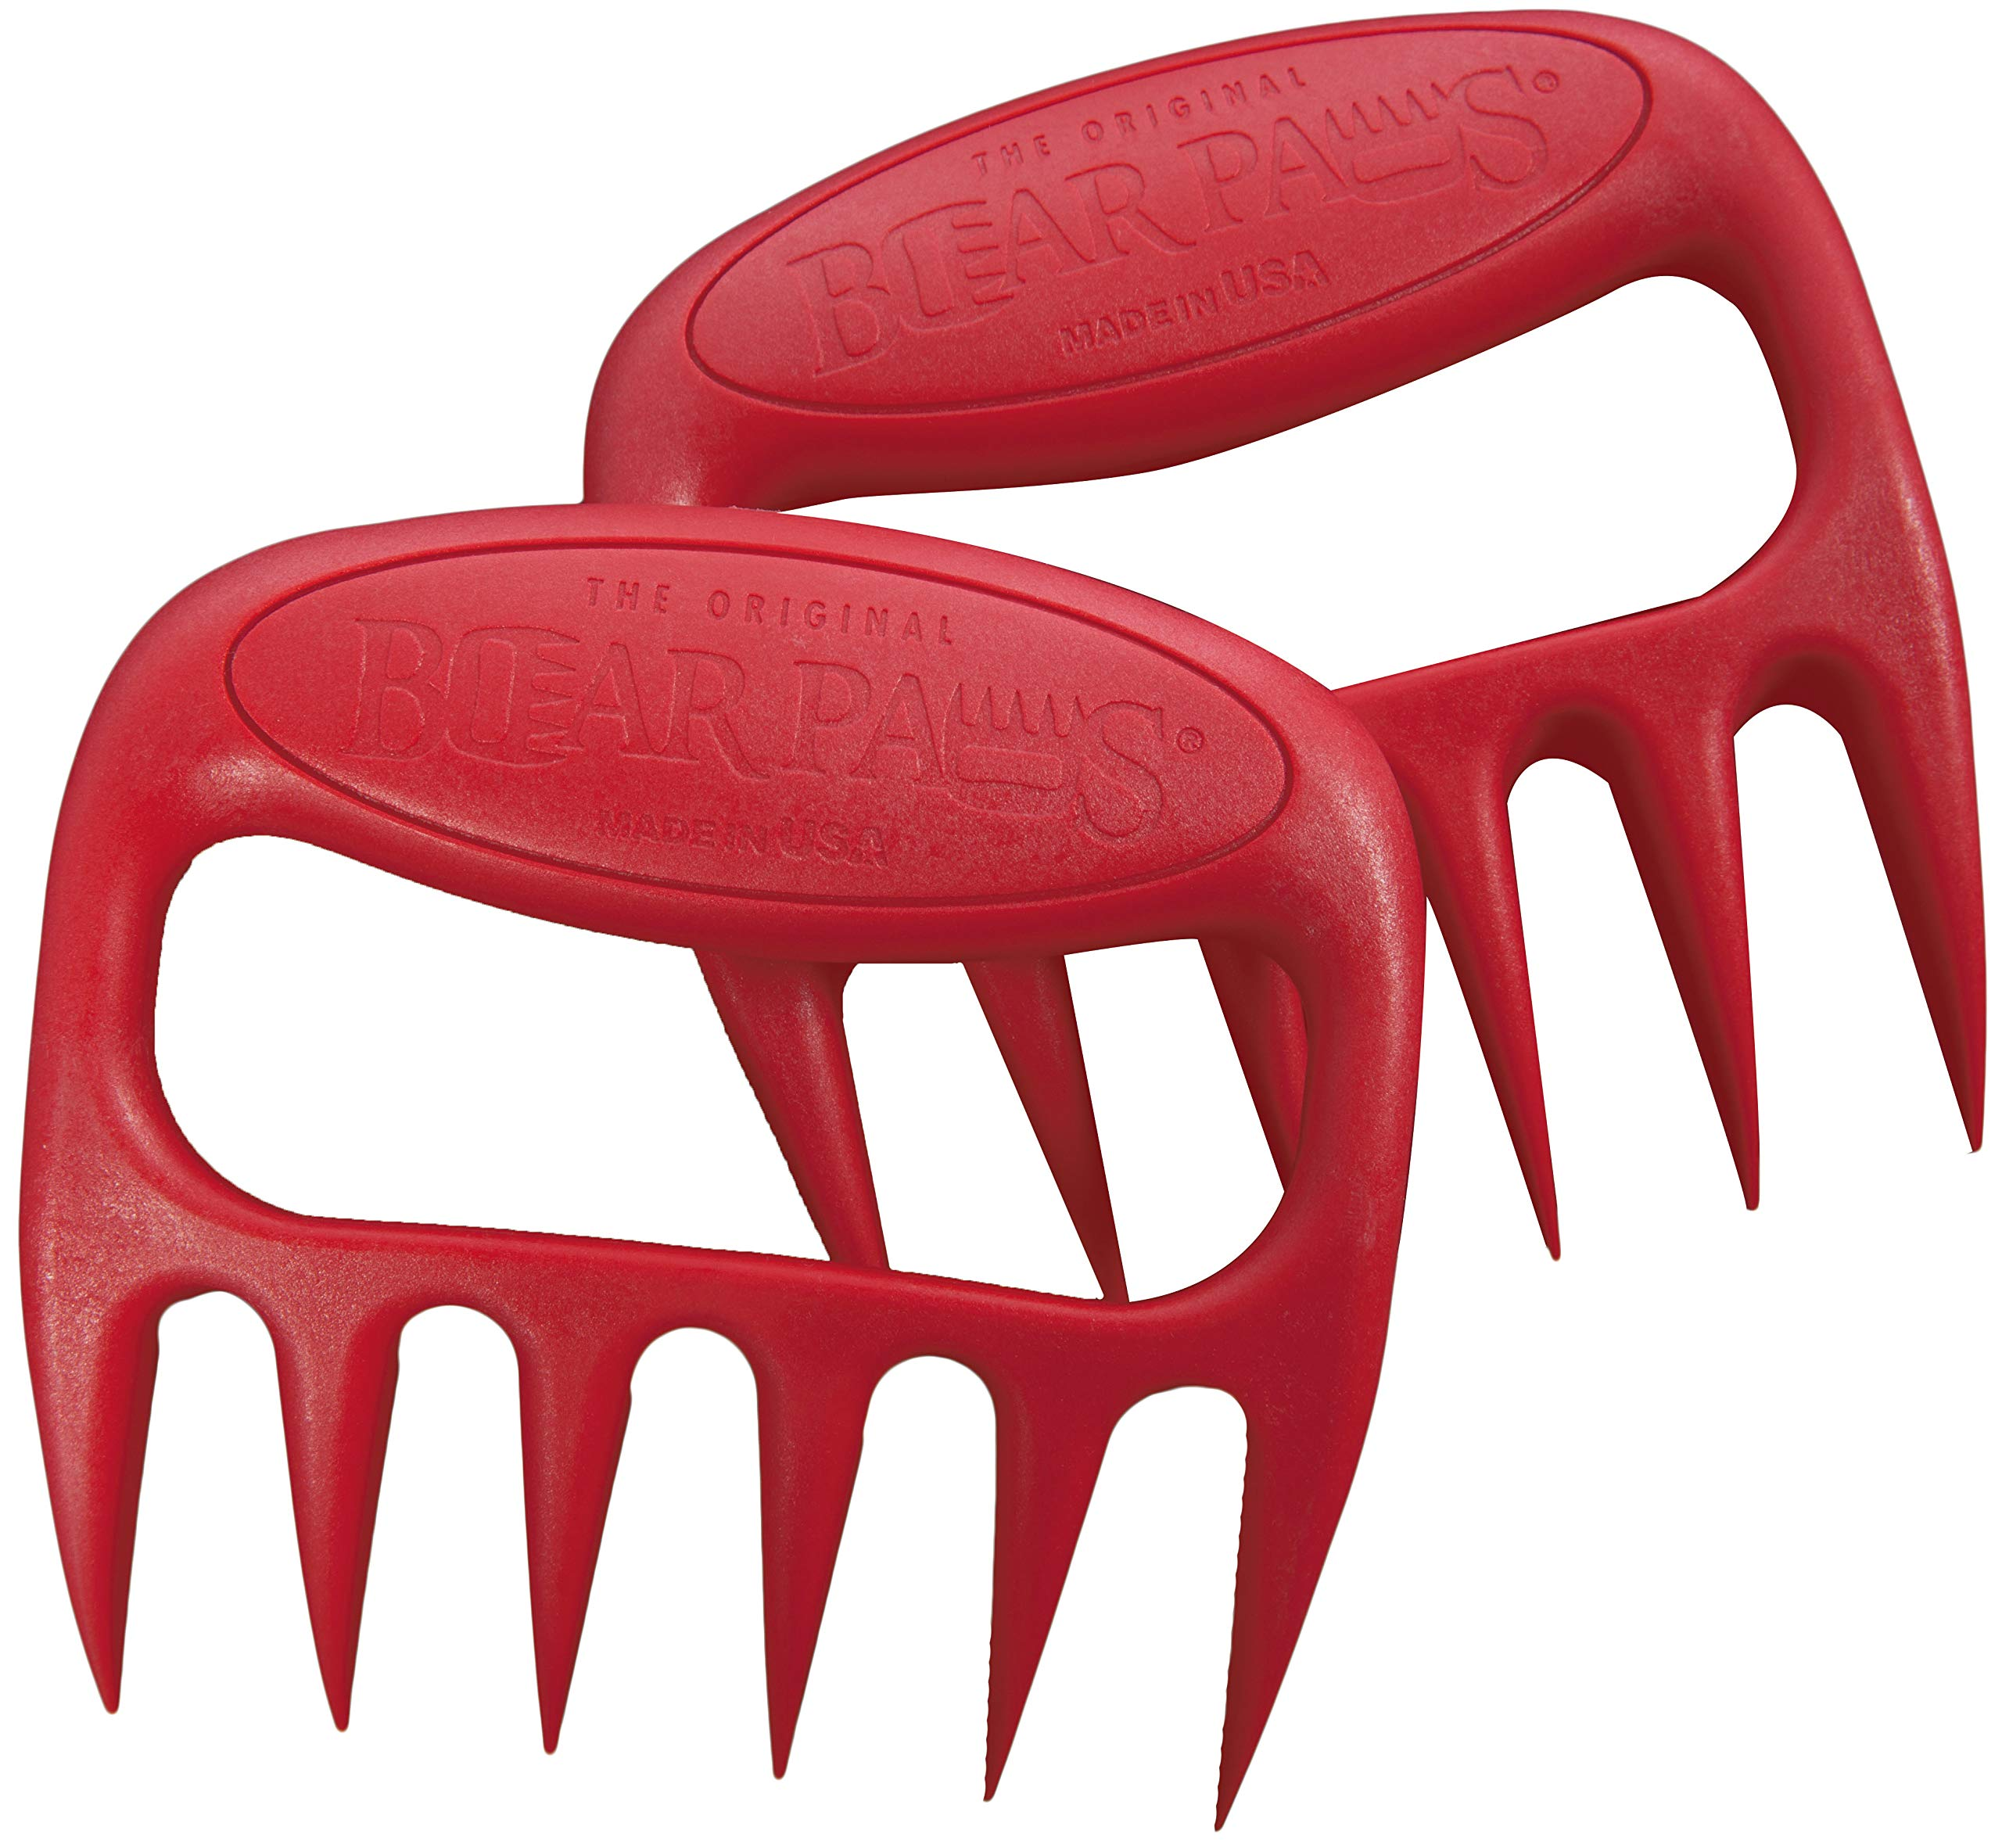 The Original Bear Paws Shredder Claws - Easily Lift, Handle, Shred, and Cut Meats - Essential for BBQ Pros - Ultra-Sharp by Bear Paw Products